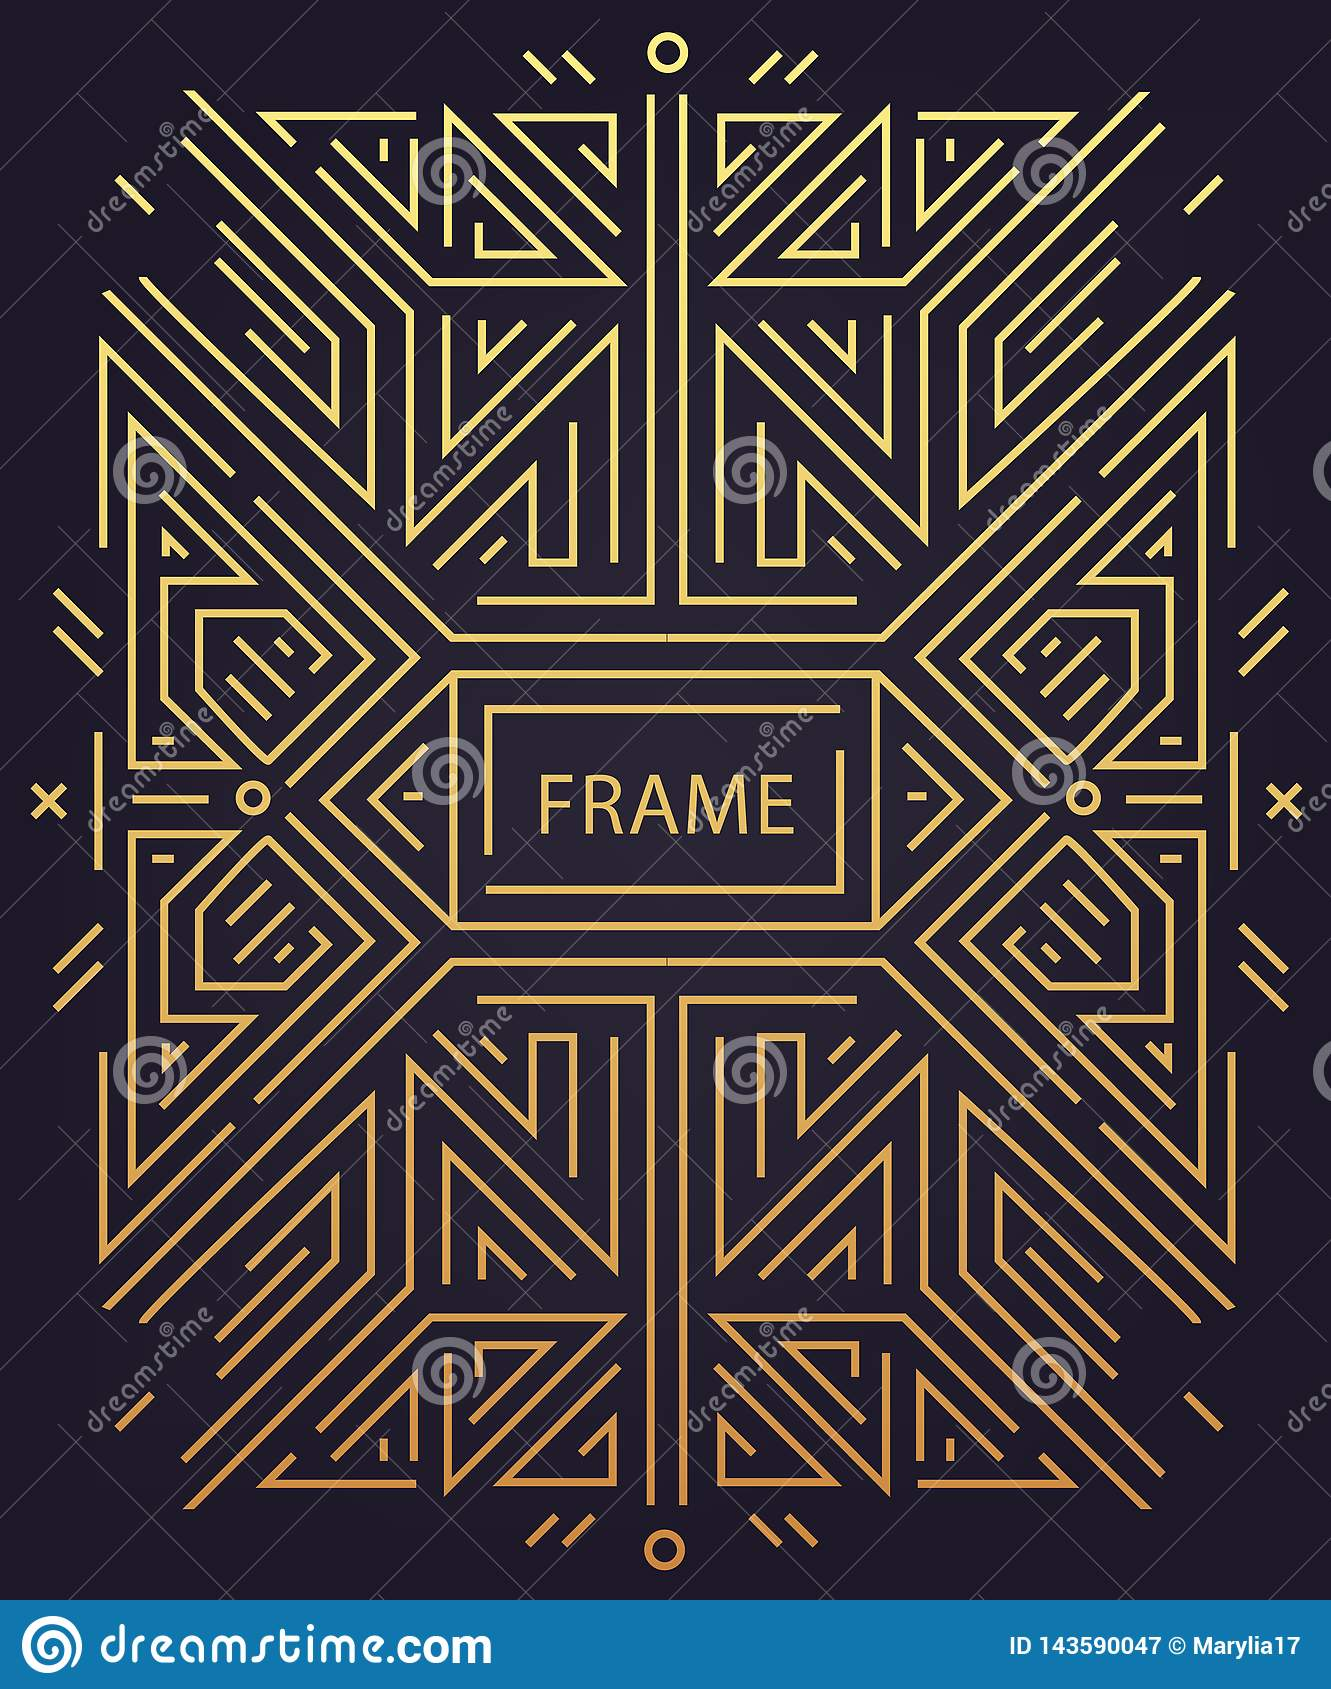 Vector Abstract Geometric Art Deco Frame Border Background